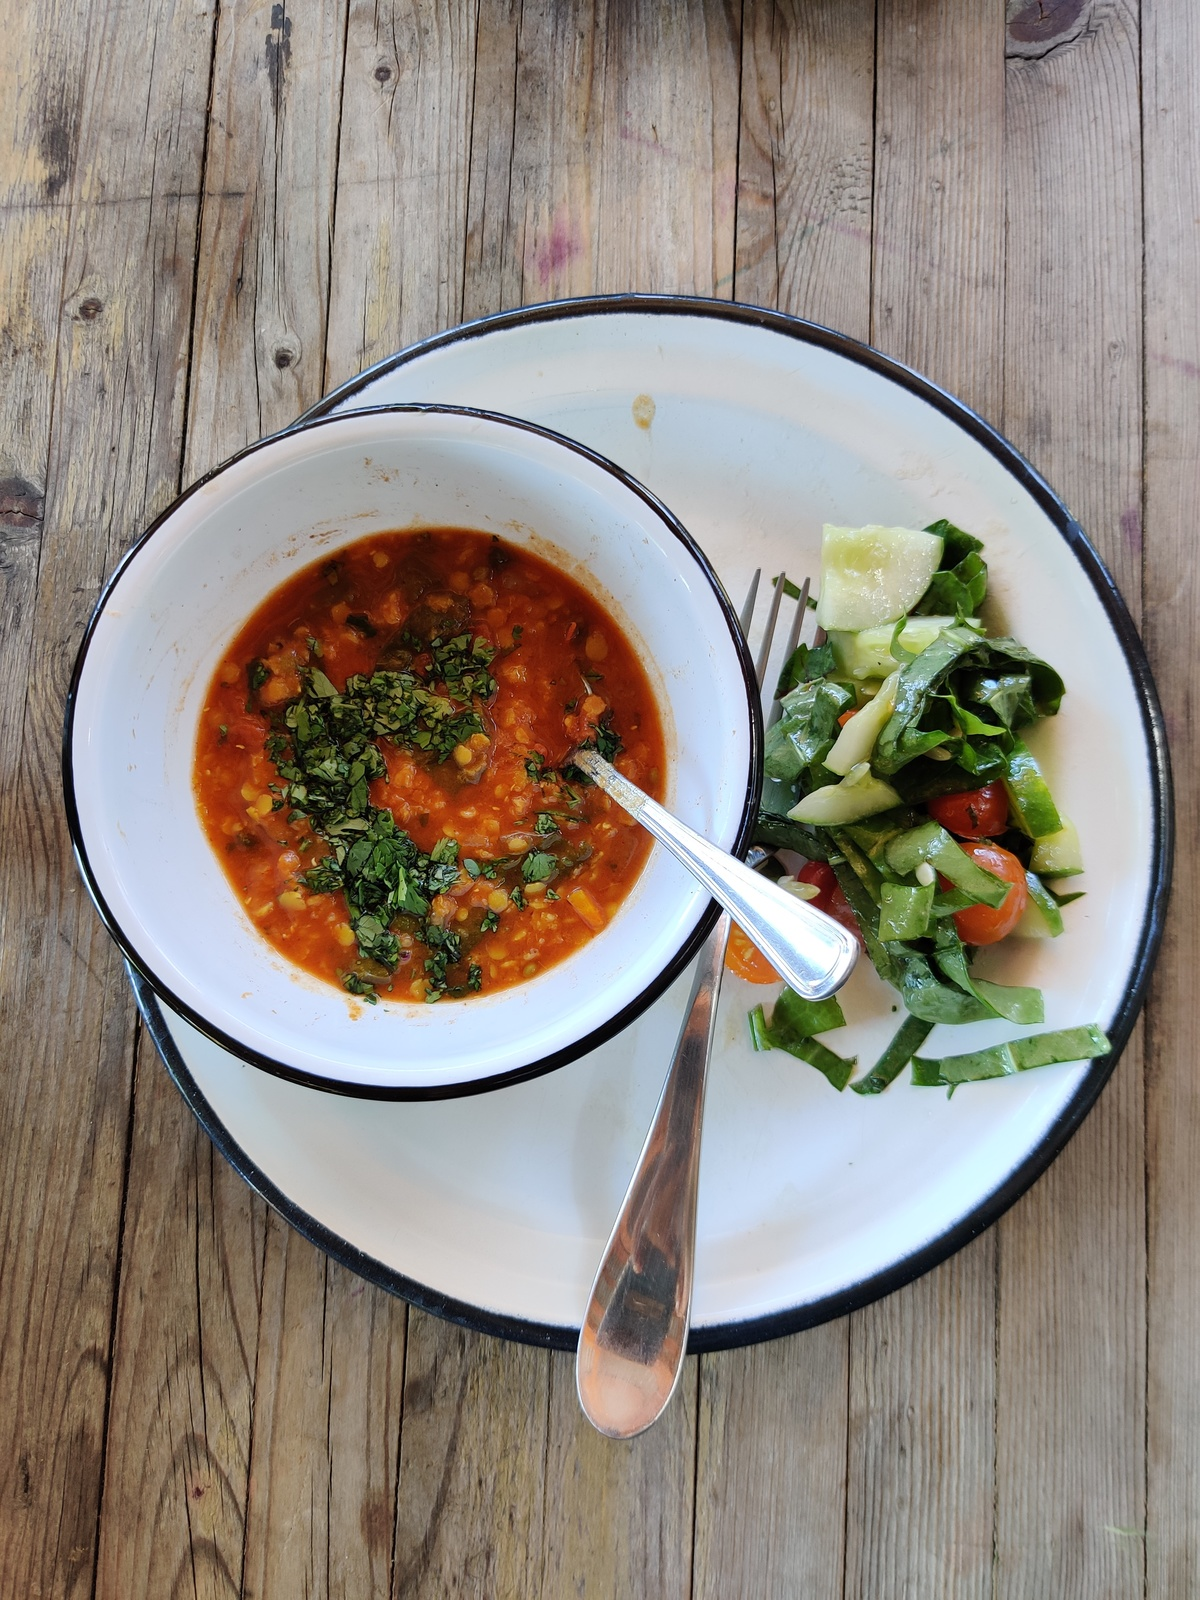 bowl of lentil soup with cilantro on a plate with salad on the side.